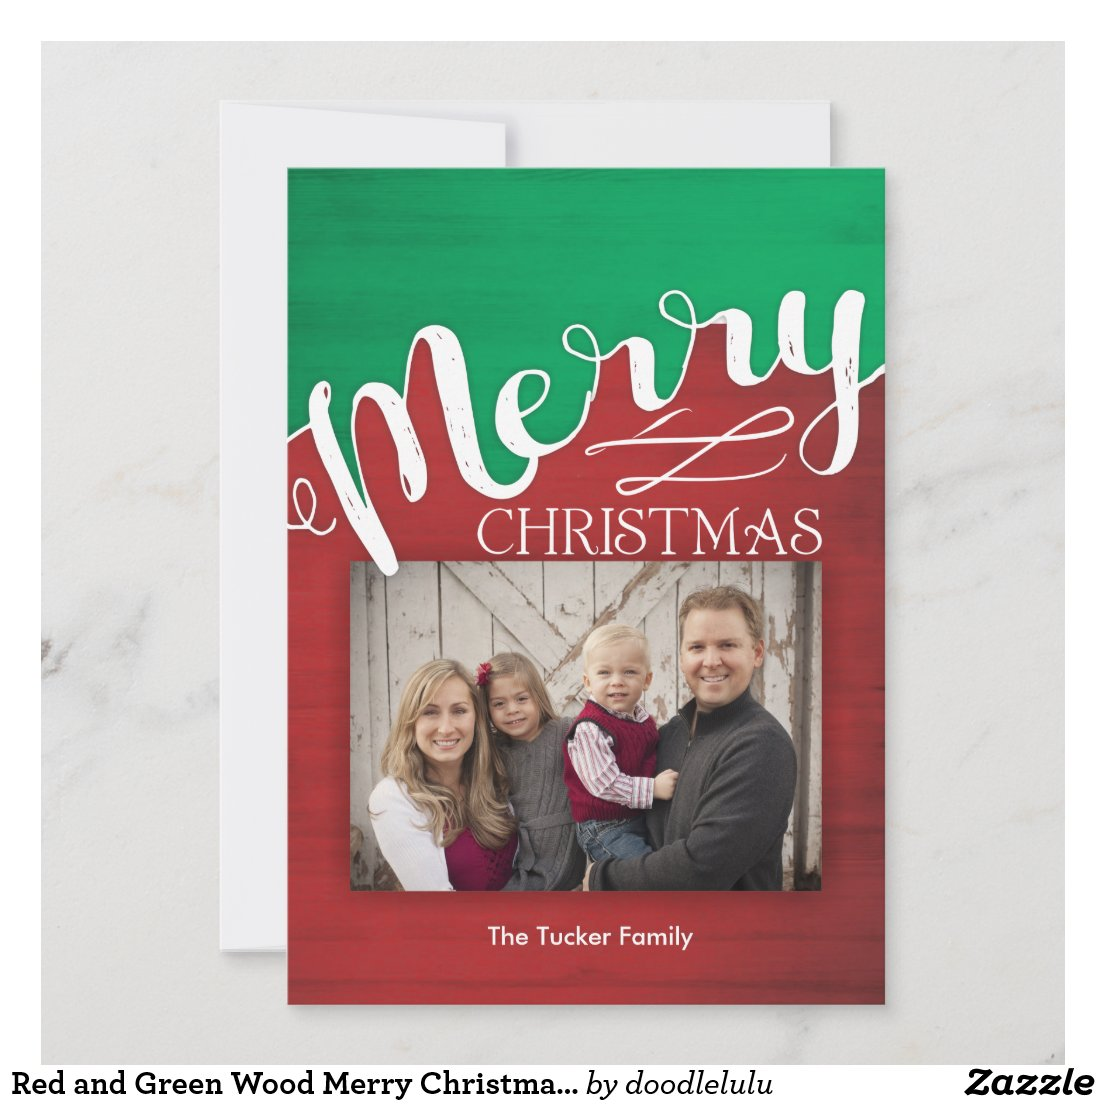 Red and Green Wood Merry Christmas Photo Card